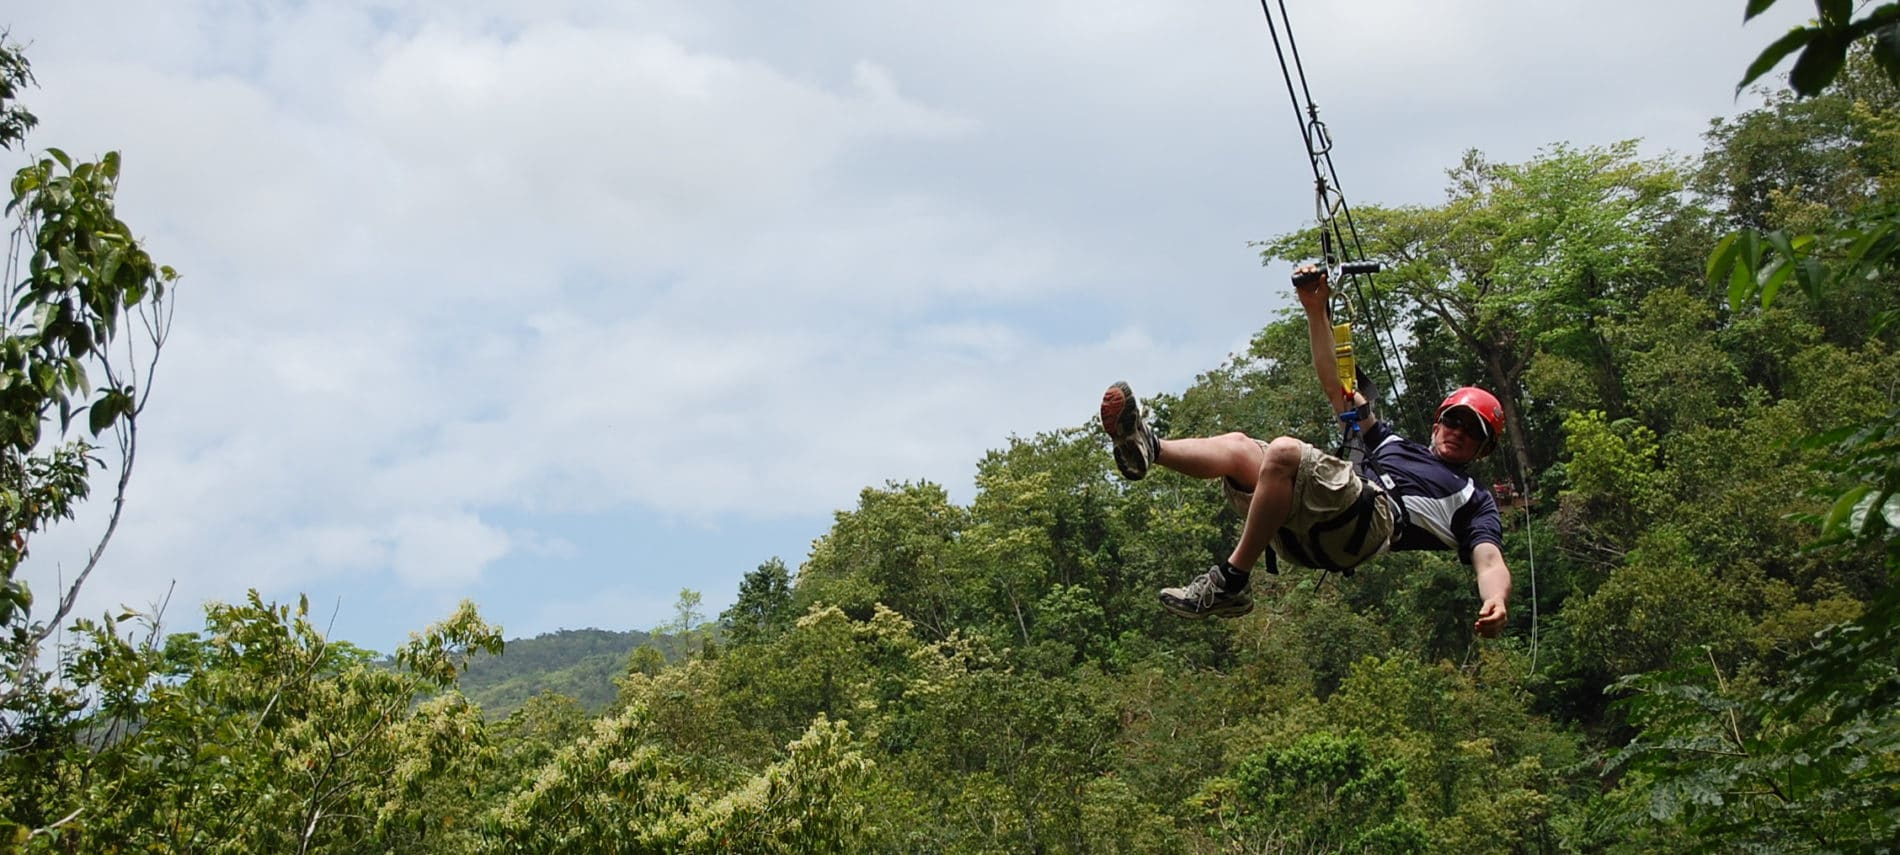 Man on a zipline at Alpine Adventures Zipline tours